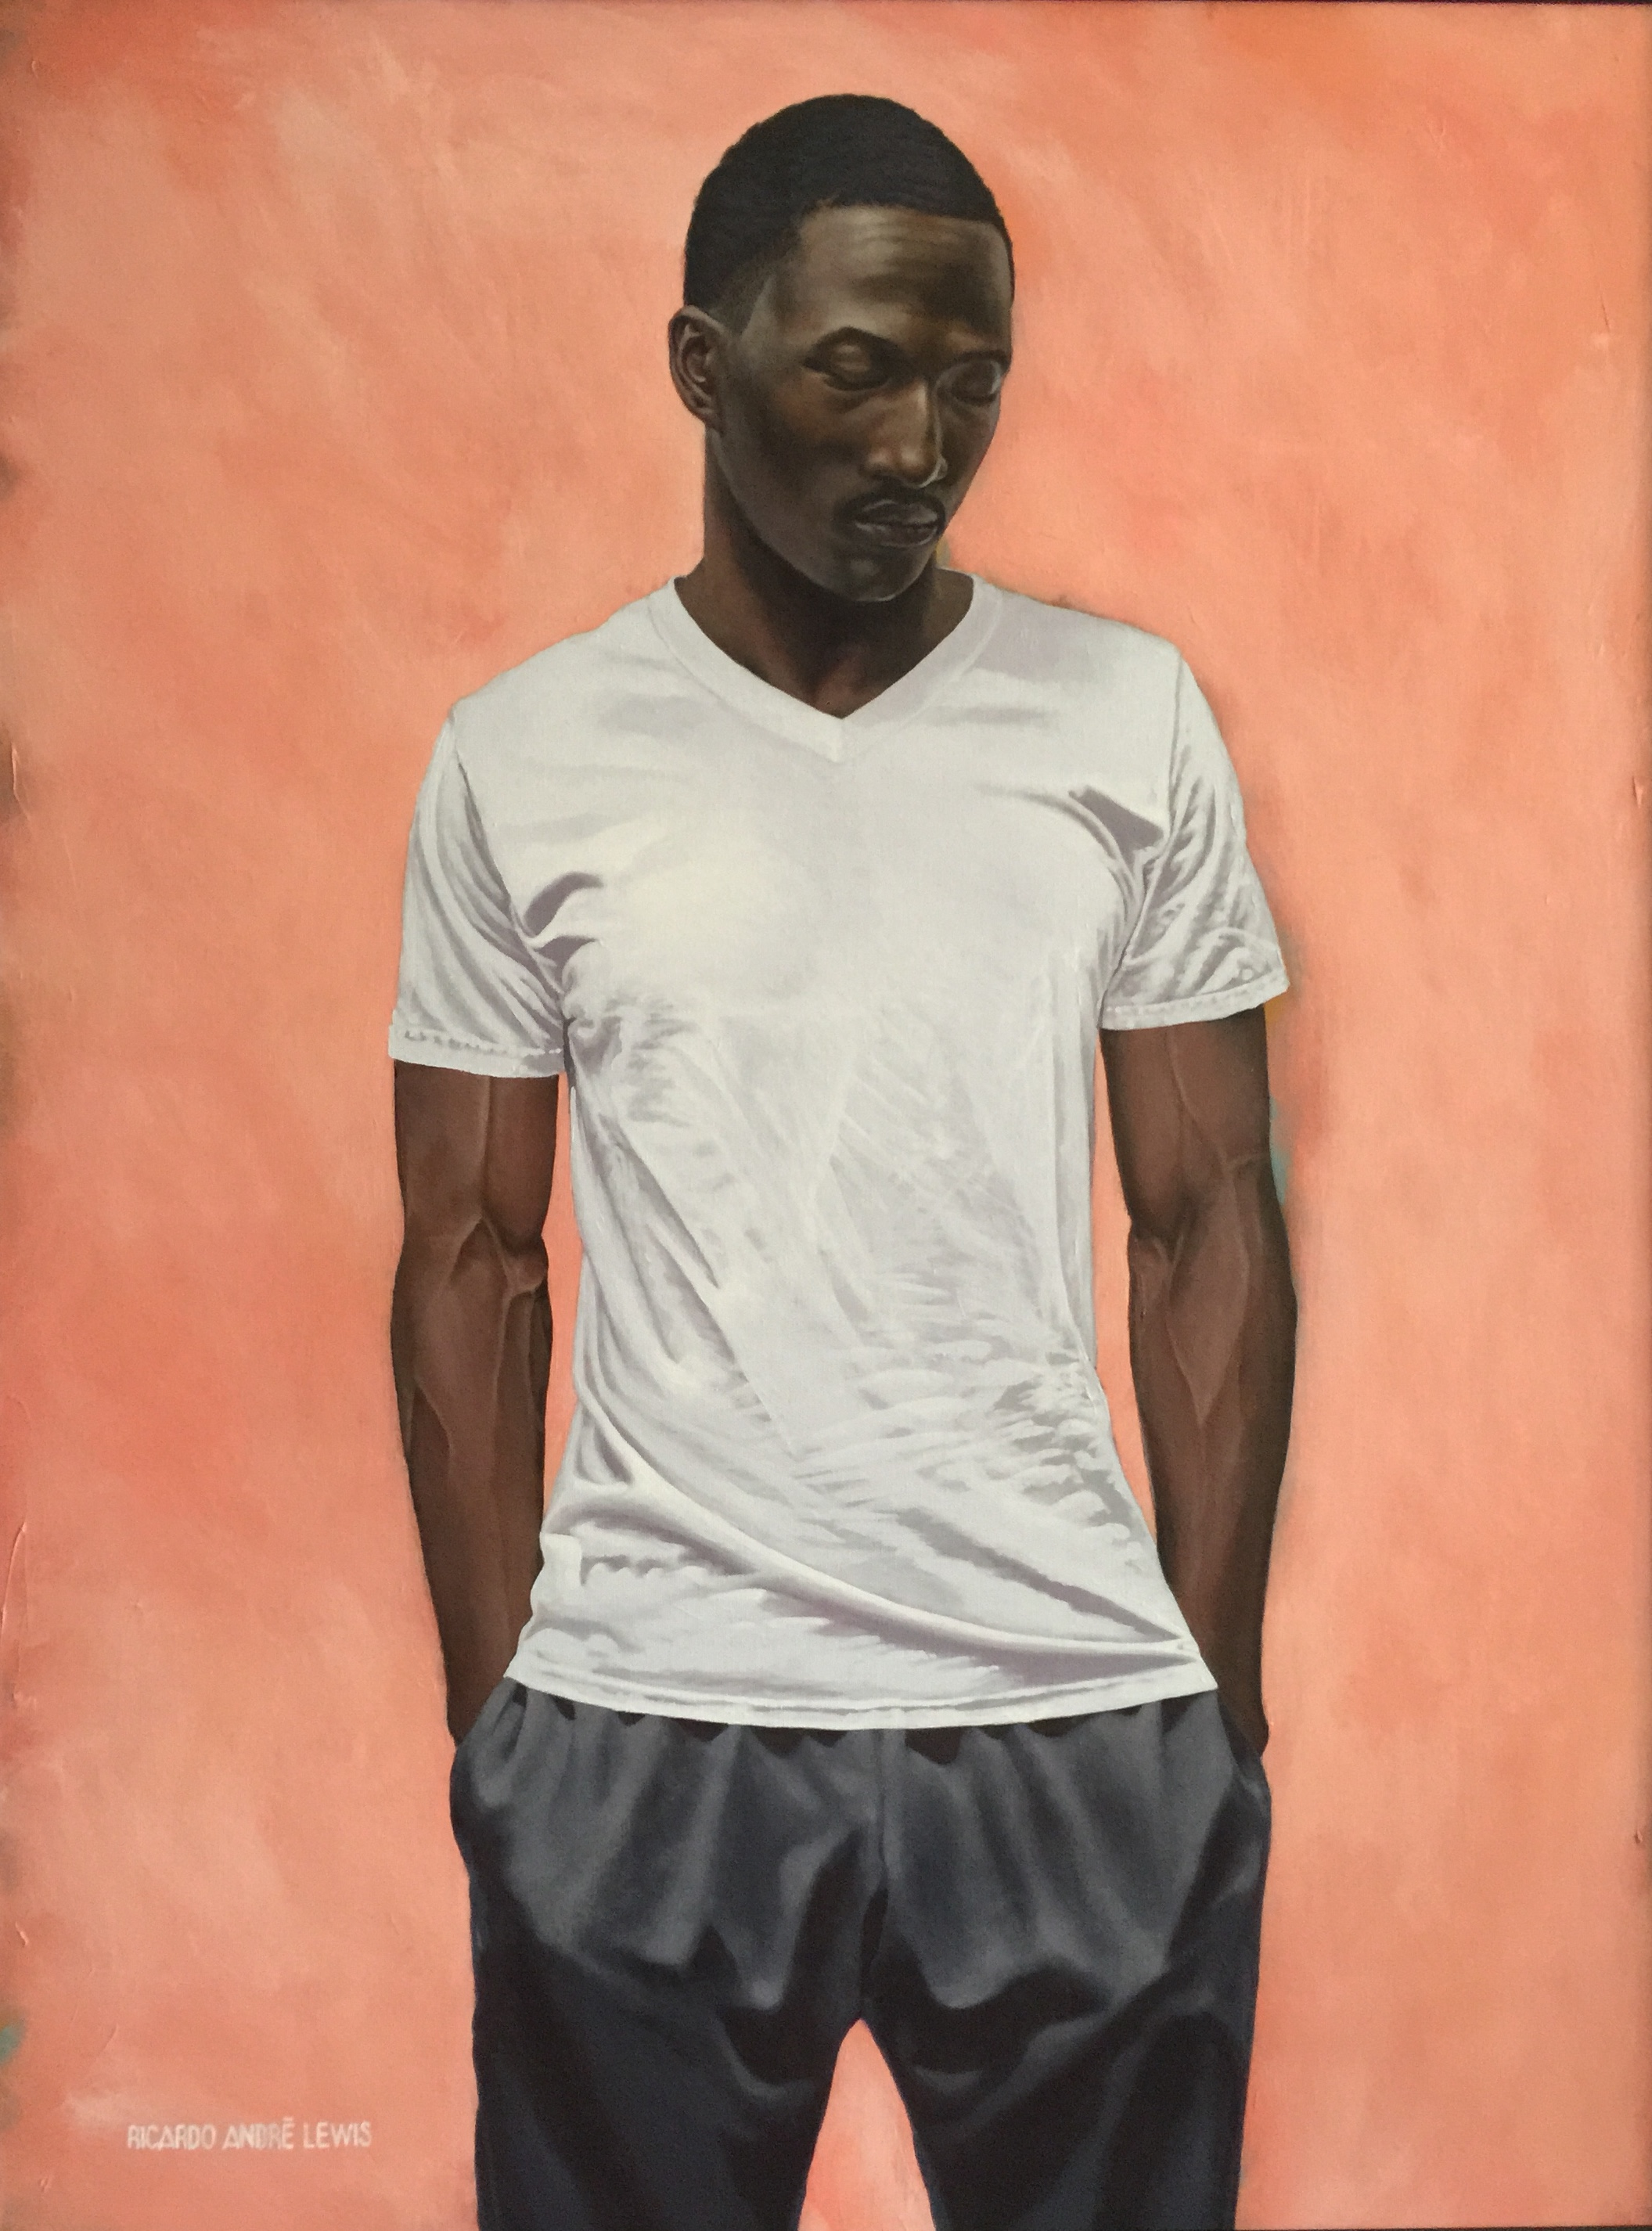 Jamol, one of Rick Lewis' series of African-American male portraits